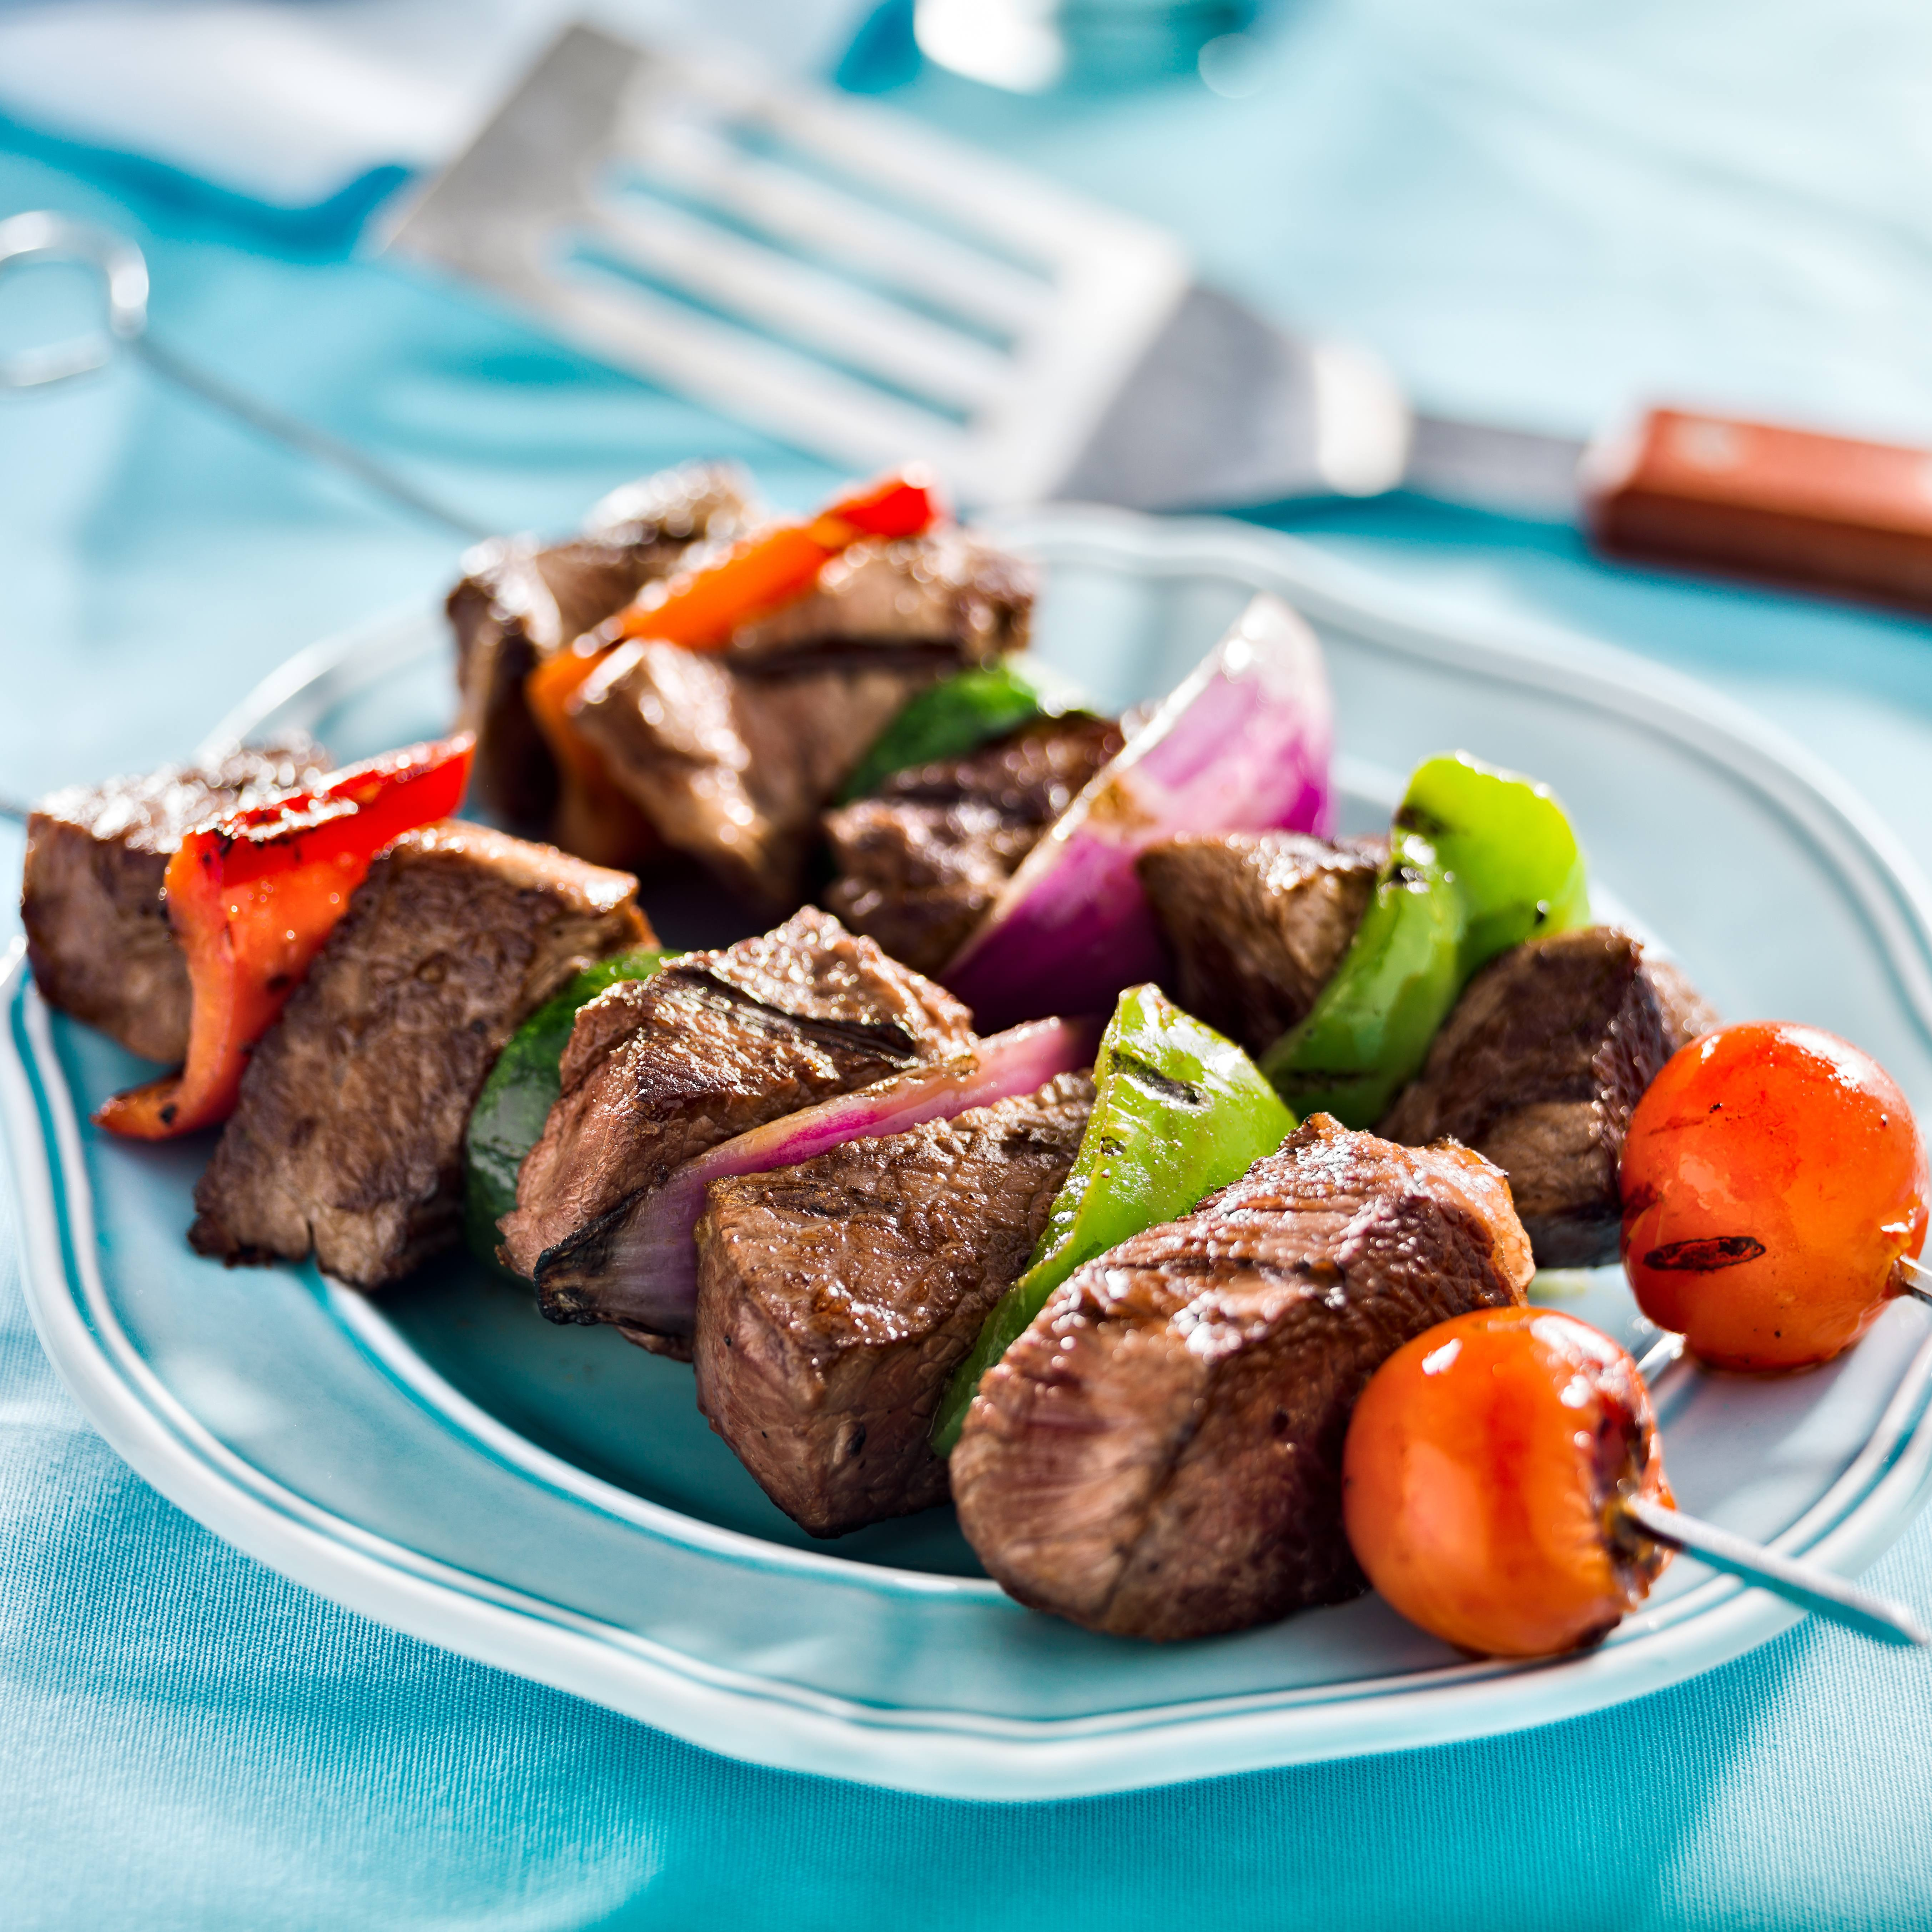 a close-up of a plate of grilled beef and vegetable shish kebabs